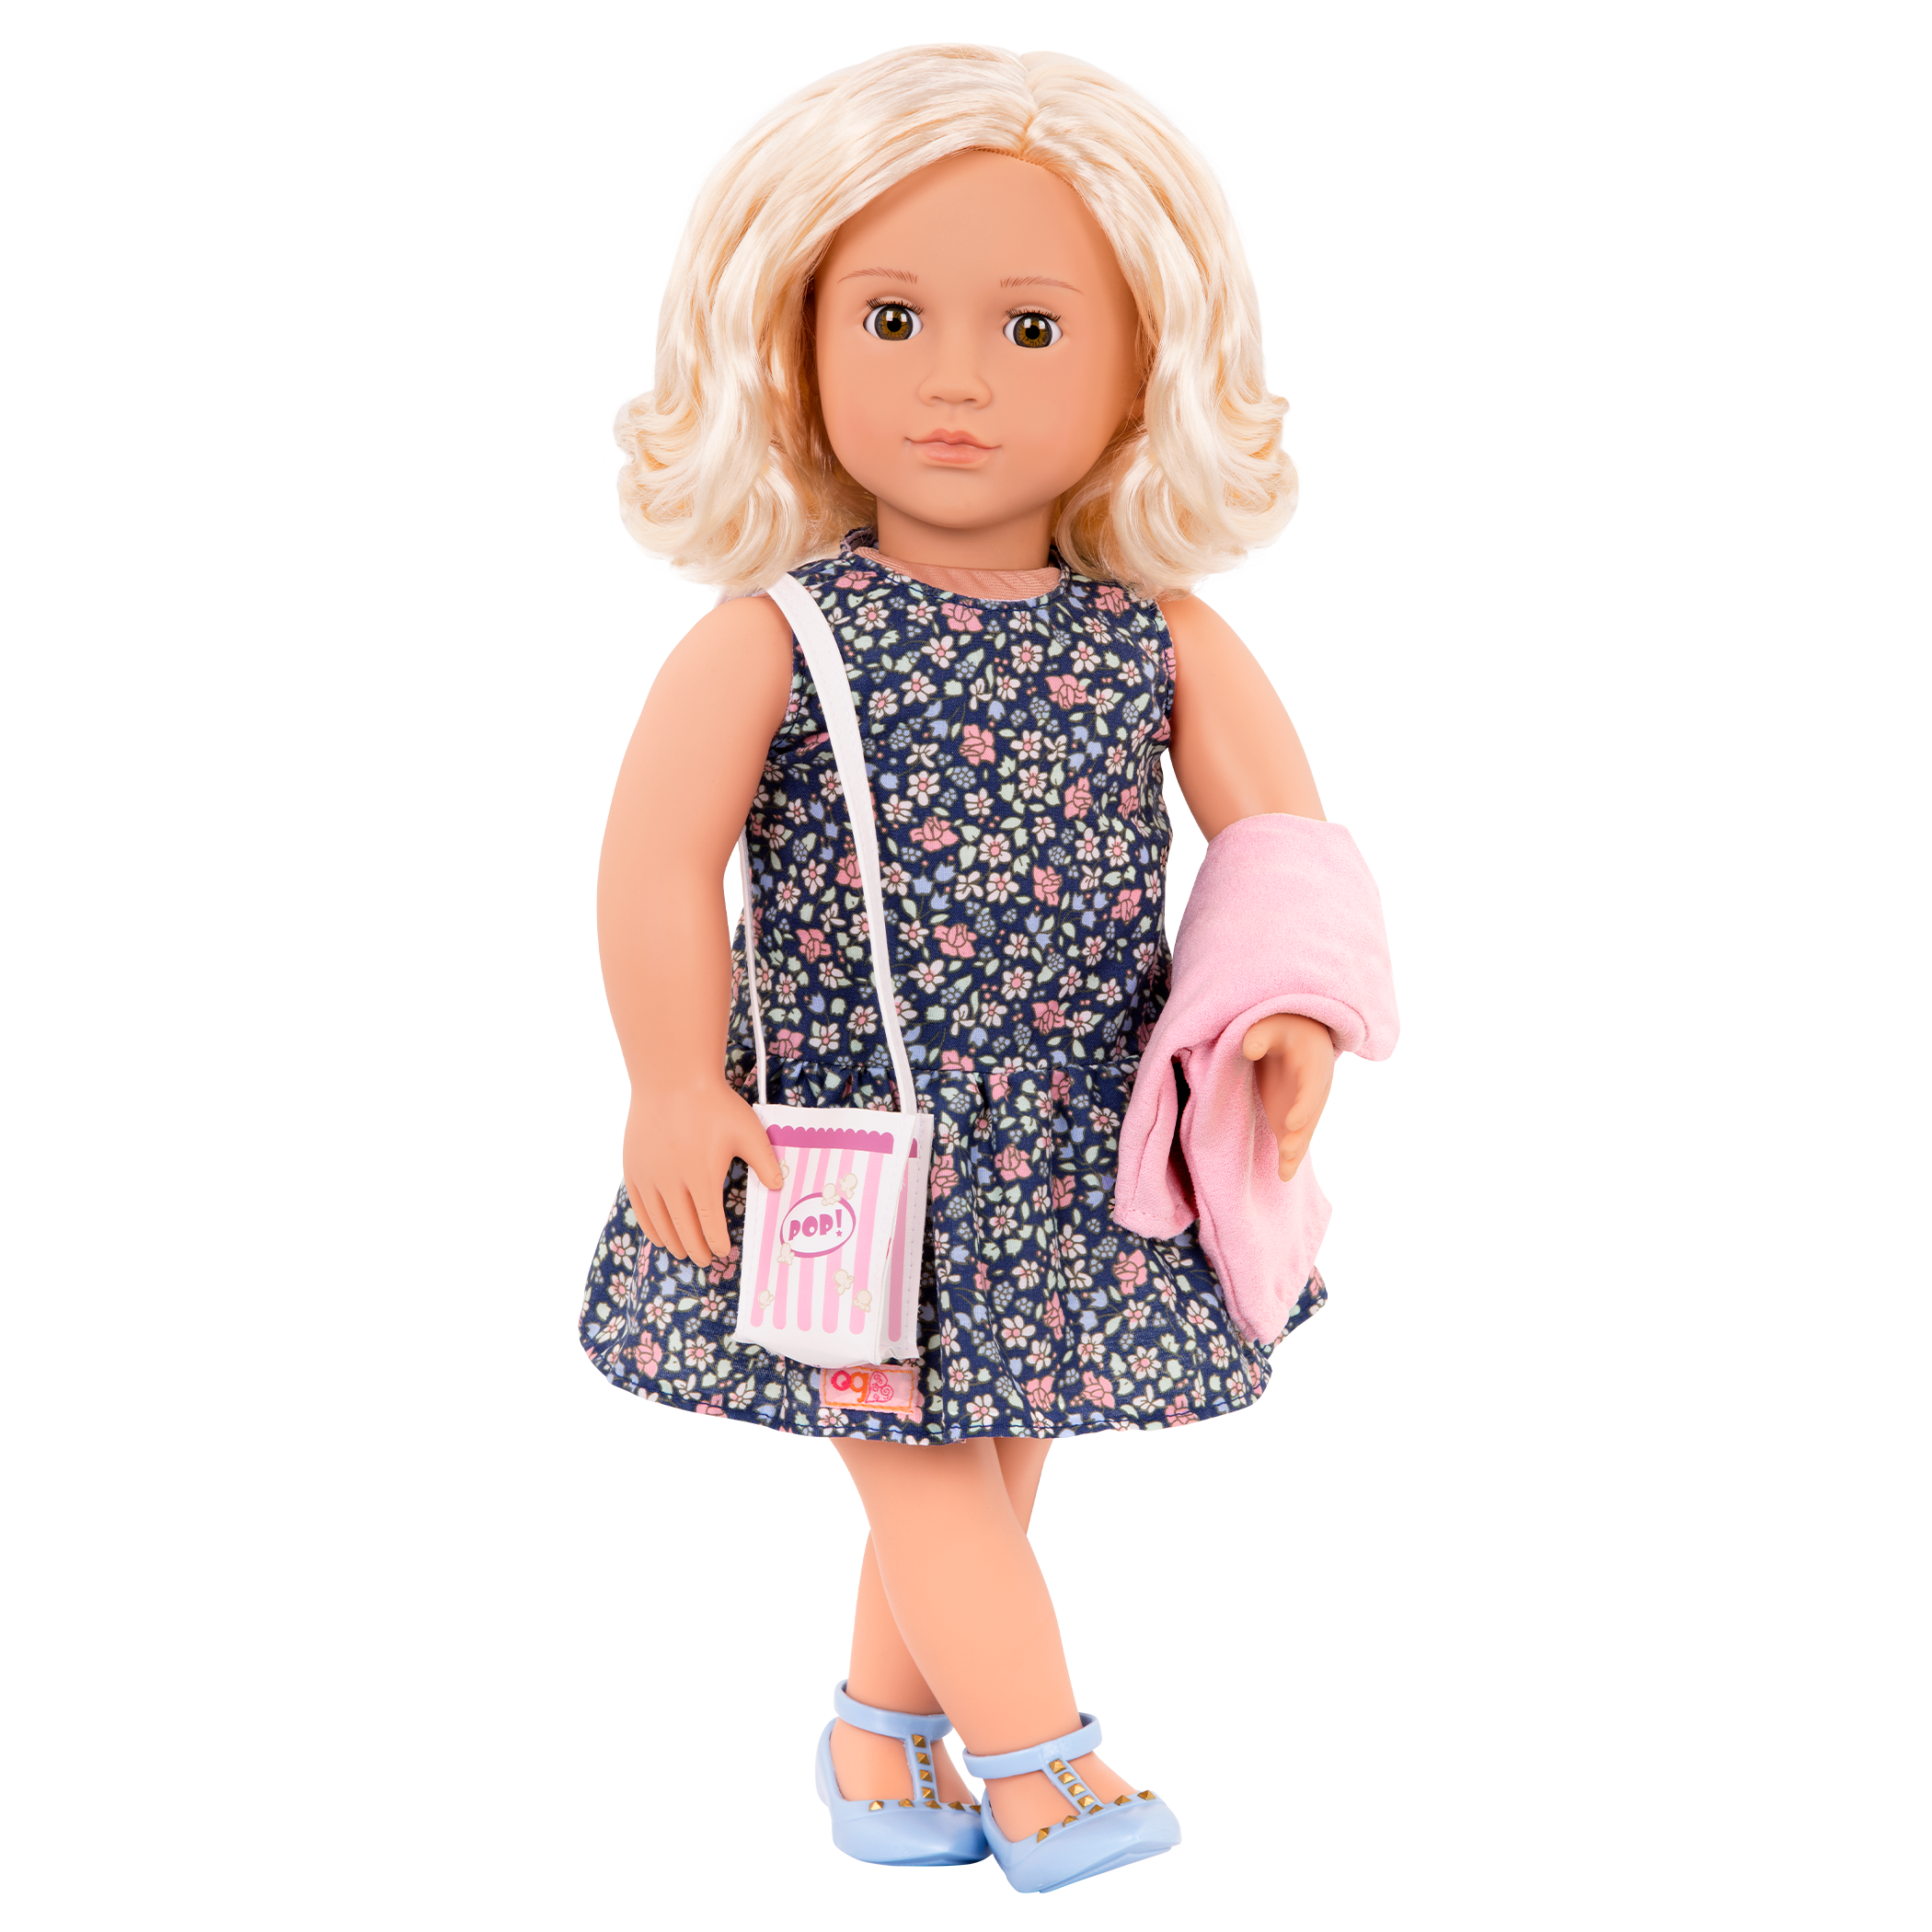 Popcorn Pizazz - 18-inch Doll Outfit with Ivory